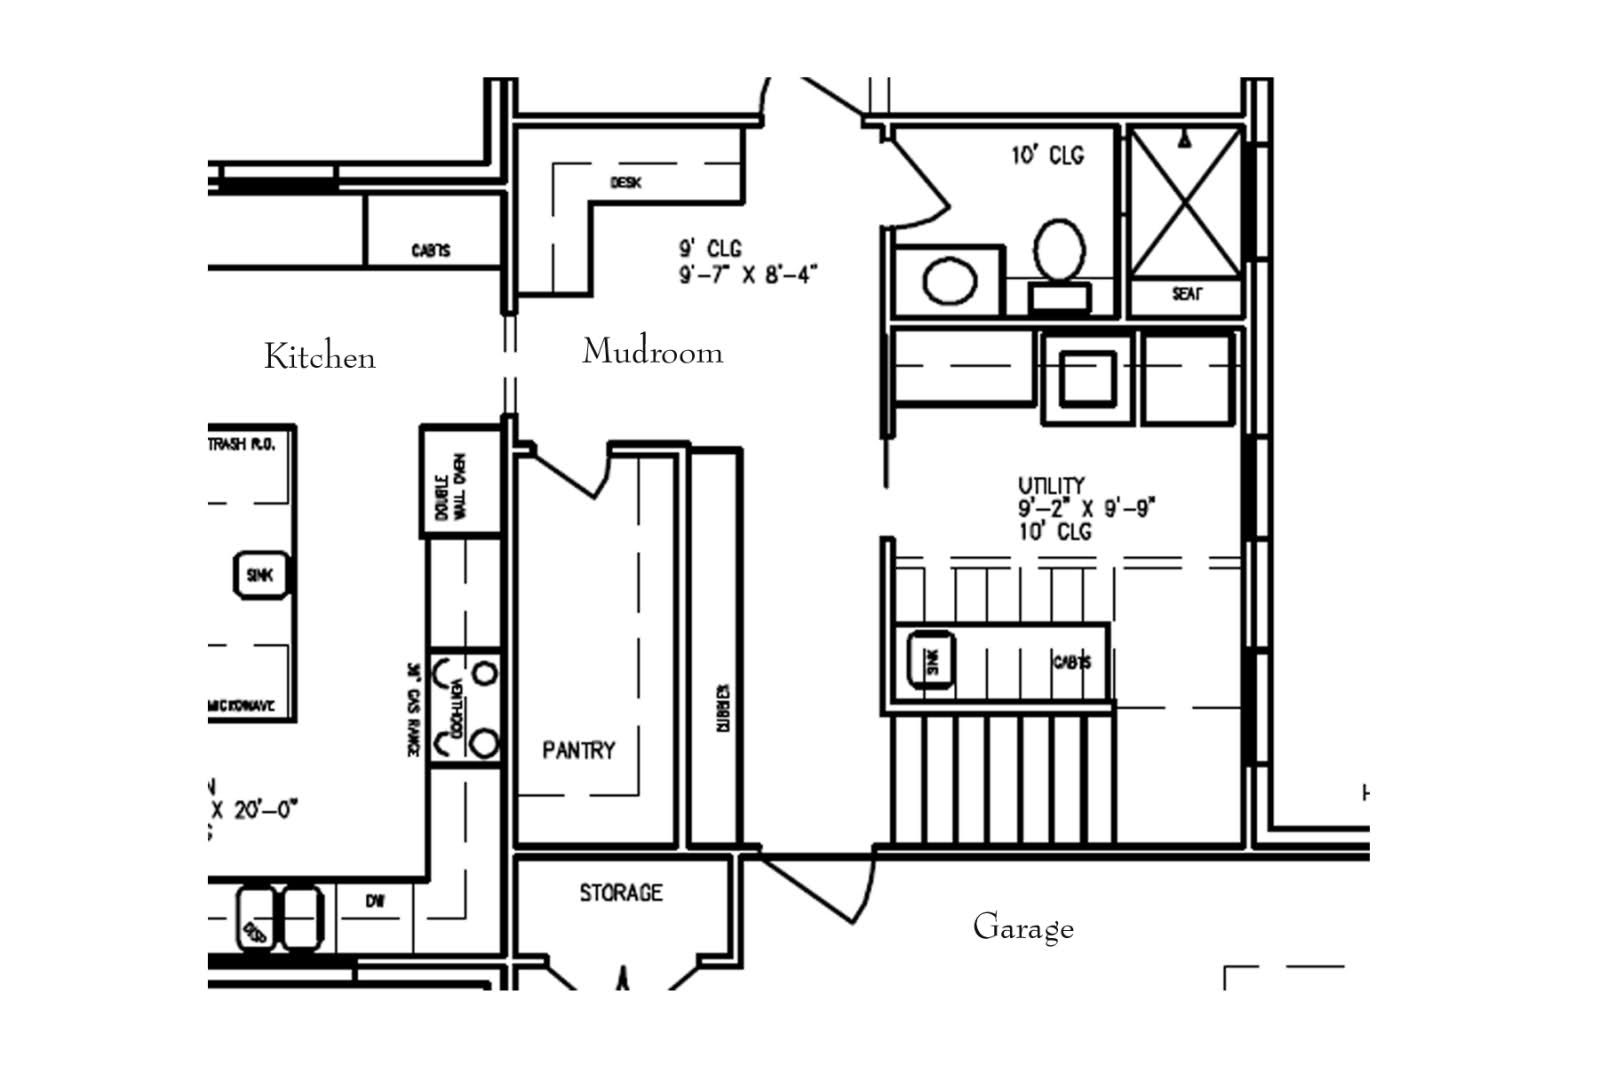 Mudroom Layout With Images